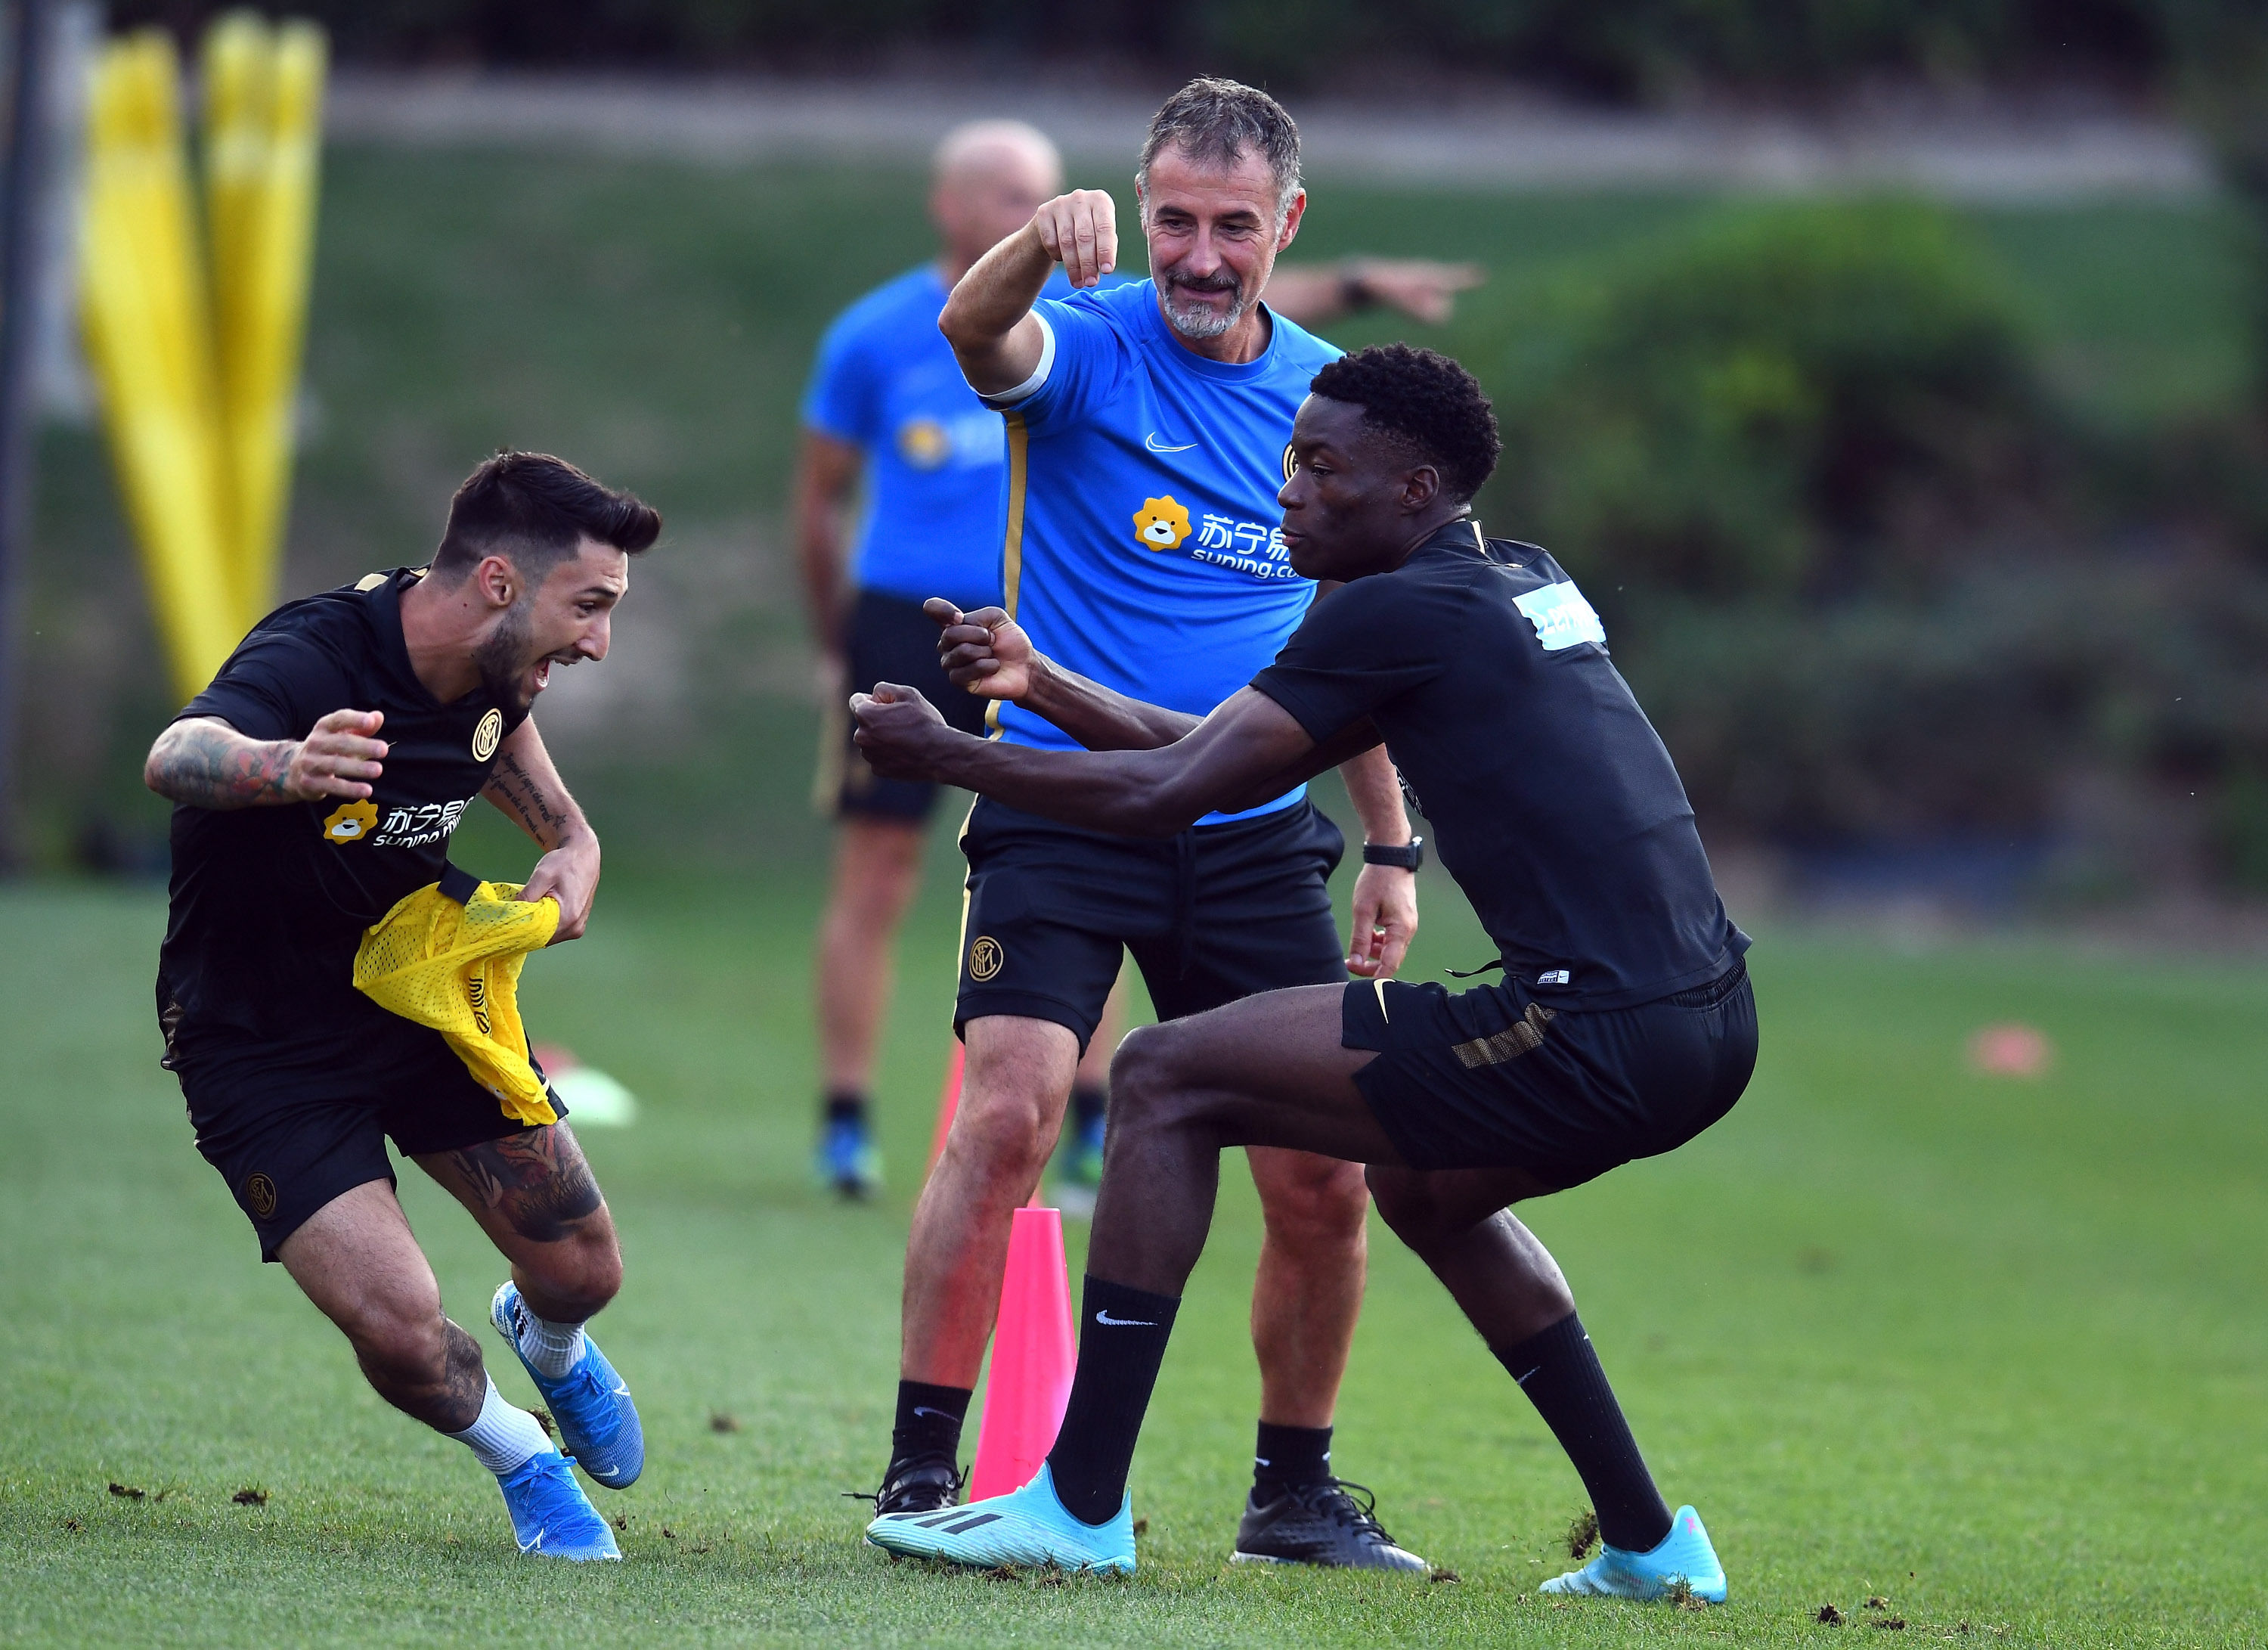 Preparation continues ahead of Inter vs. Lecce